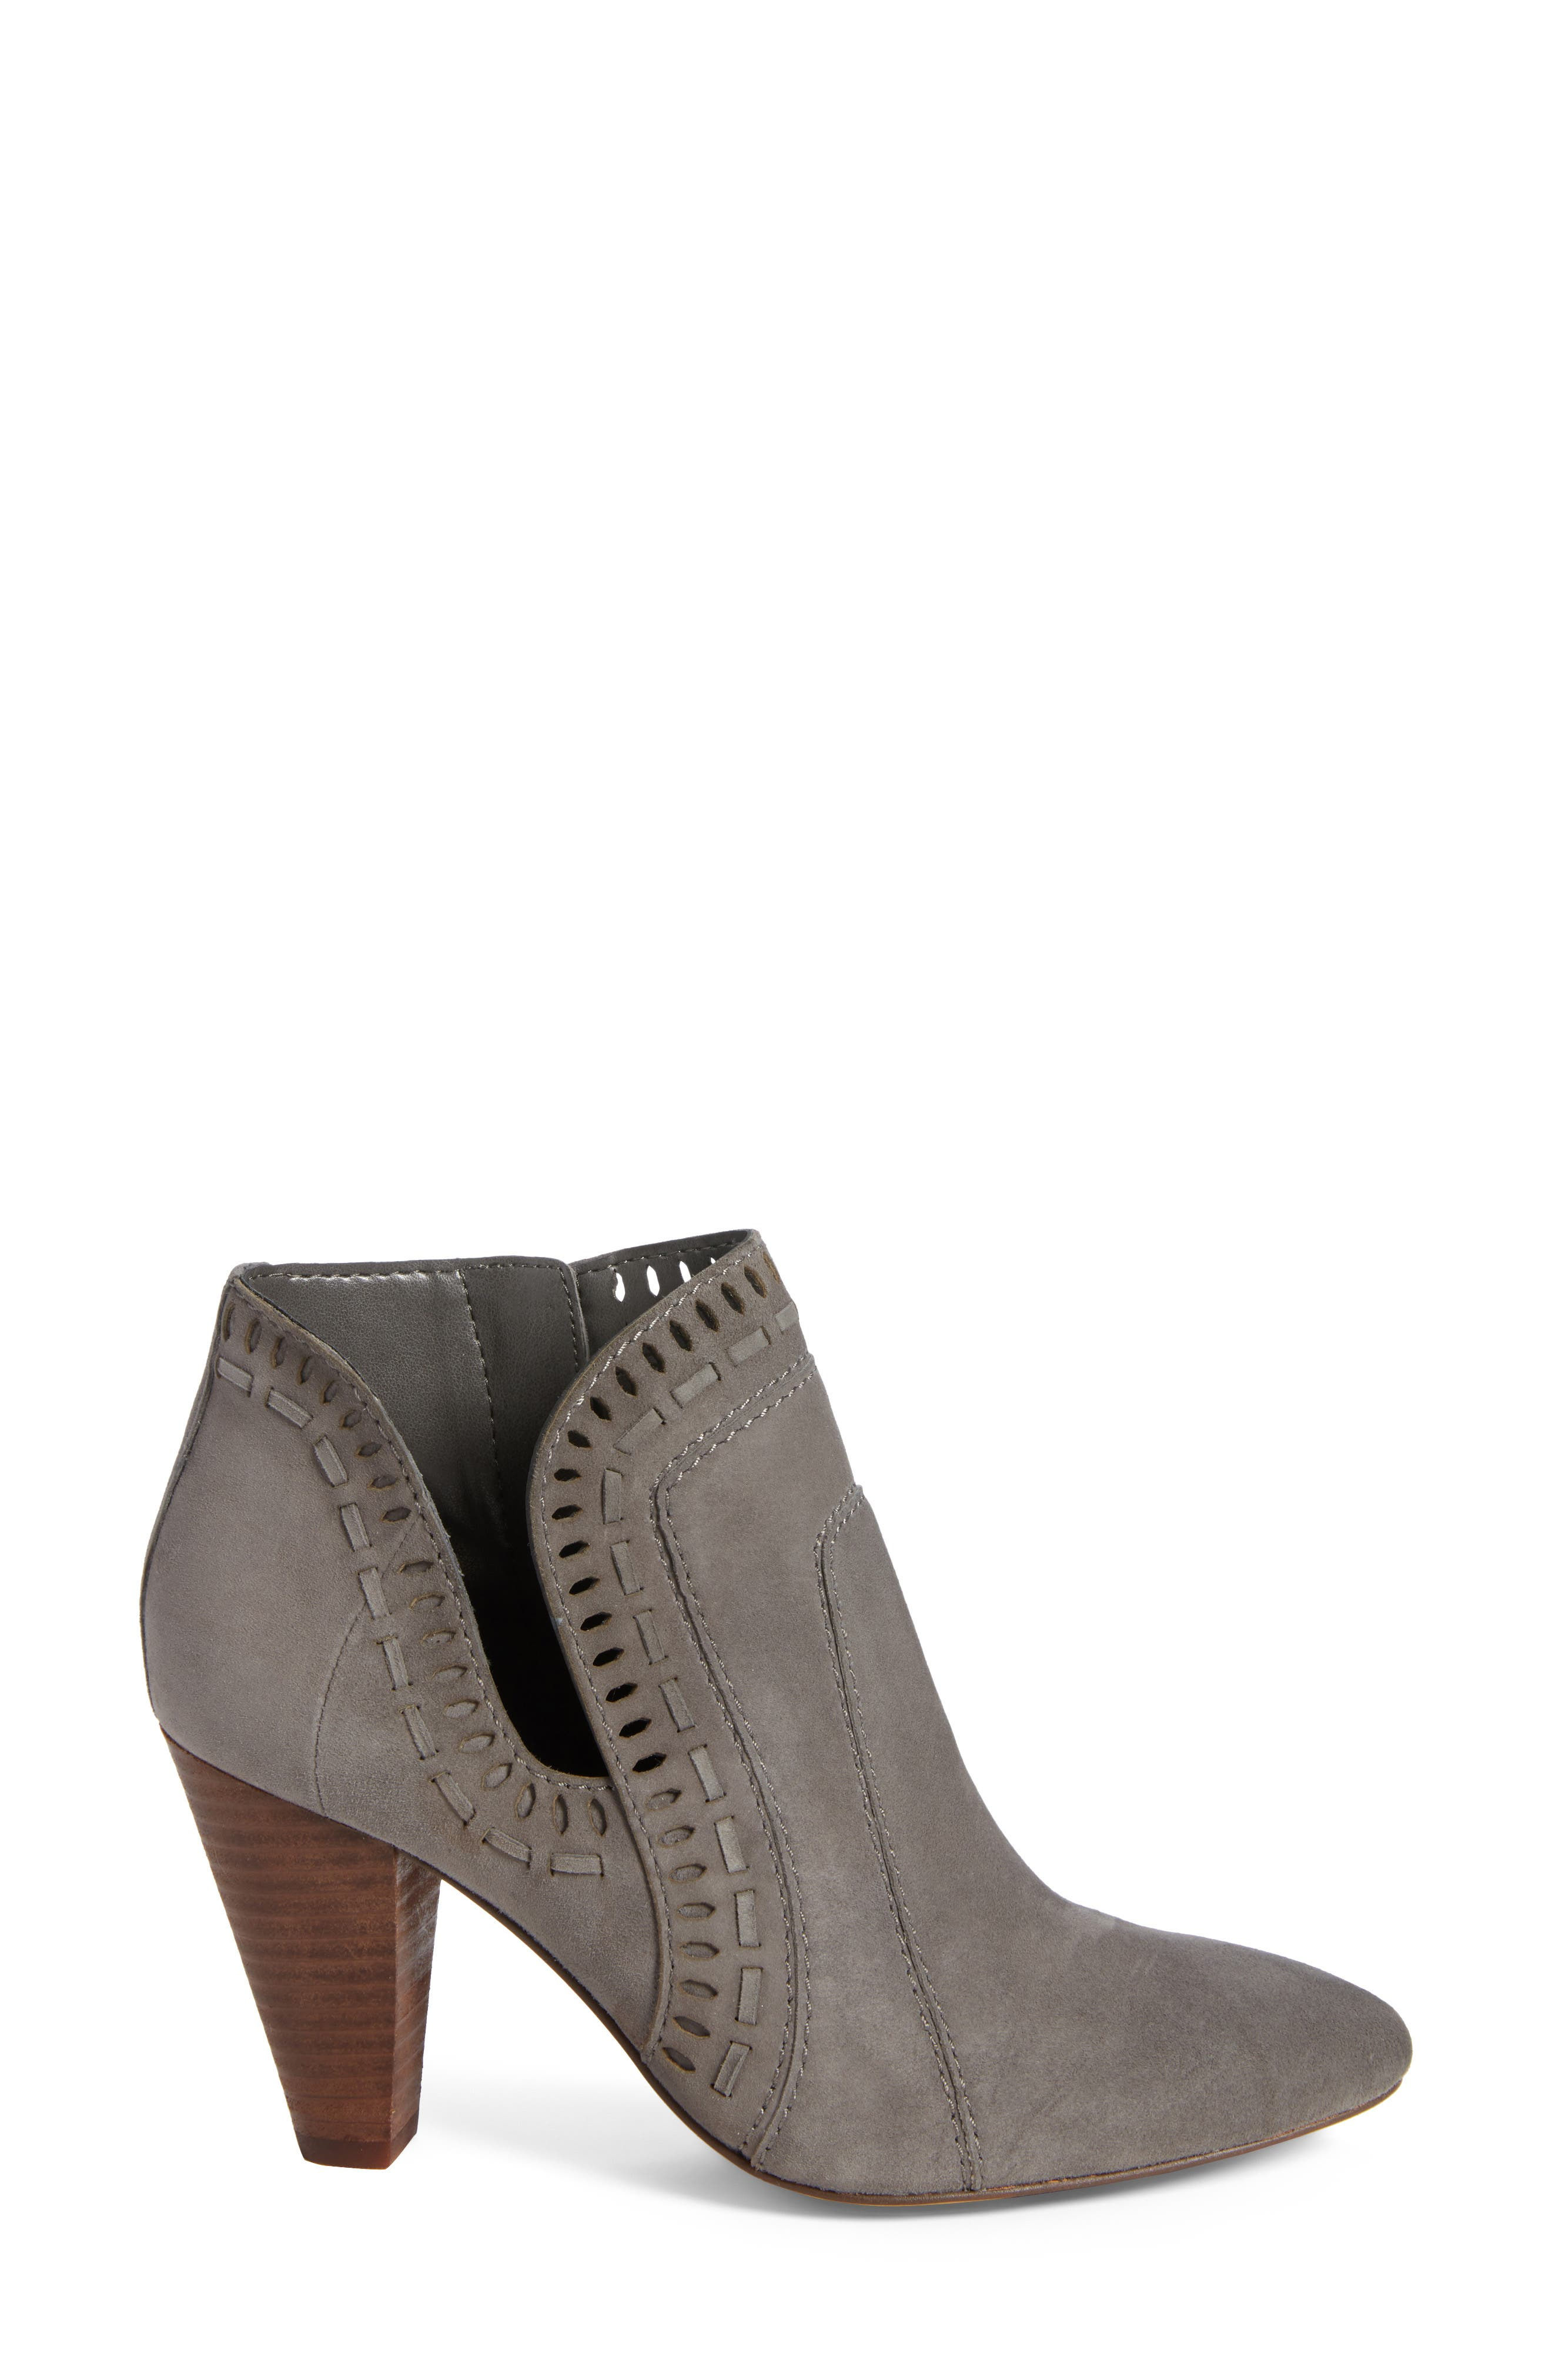 Reeista Bootie,                             Alternate thumbnail 3, color,                             GREYSTONE SUEDE